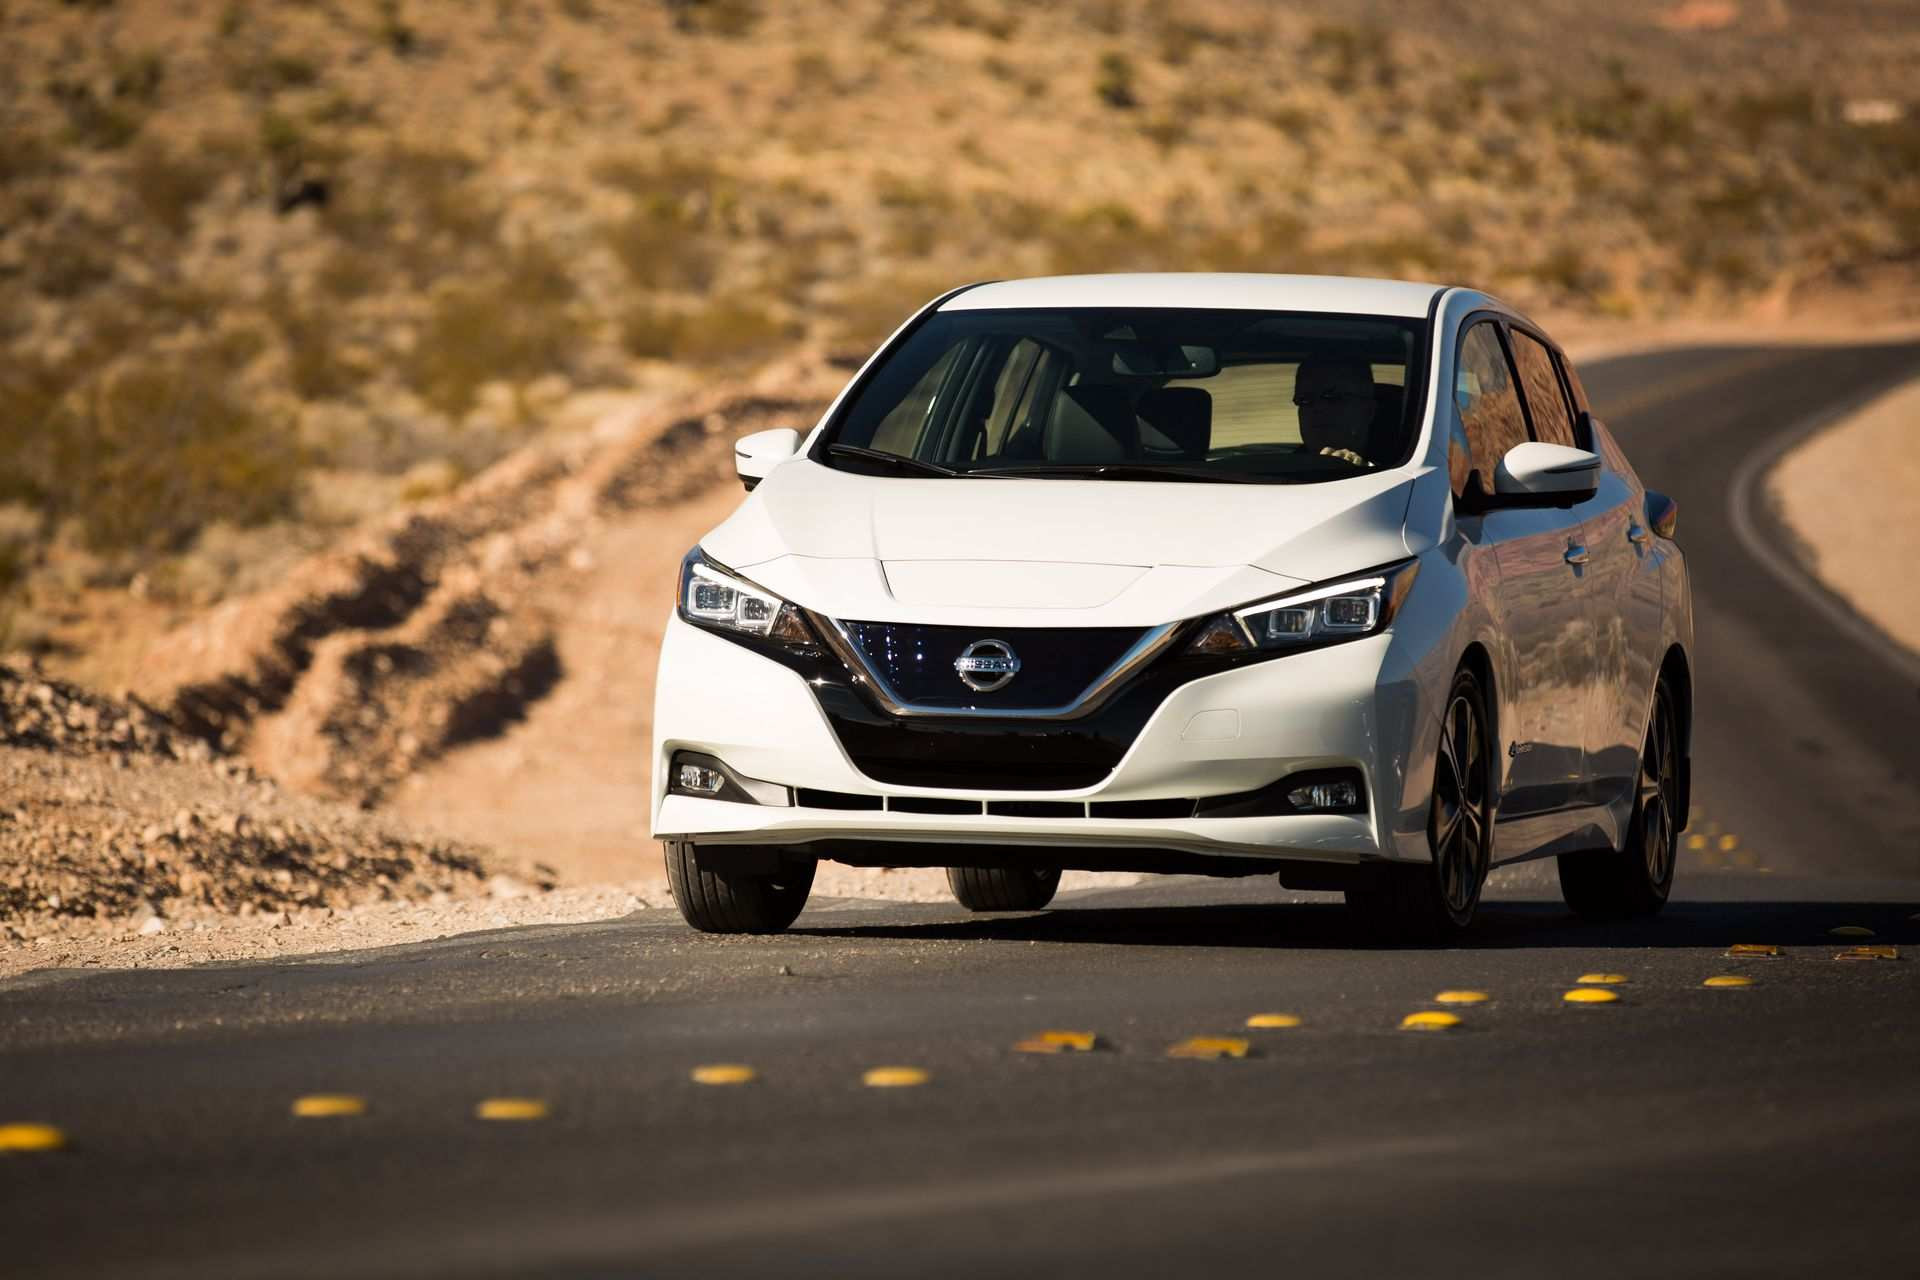 76 Gallery of Nissan Leaf 2020 60 Kwh Pricing by Nissan Leaf 2020 60 Kwh